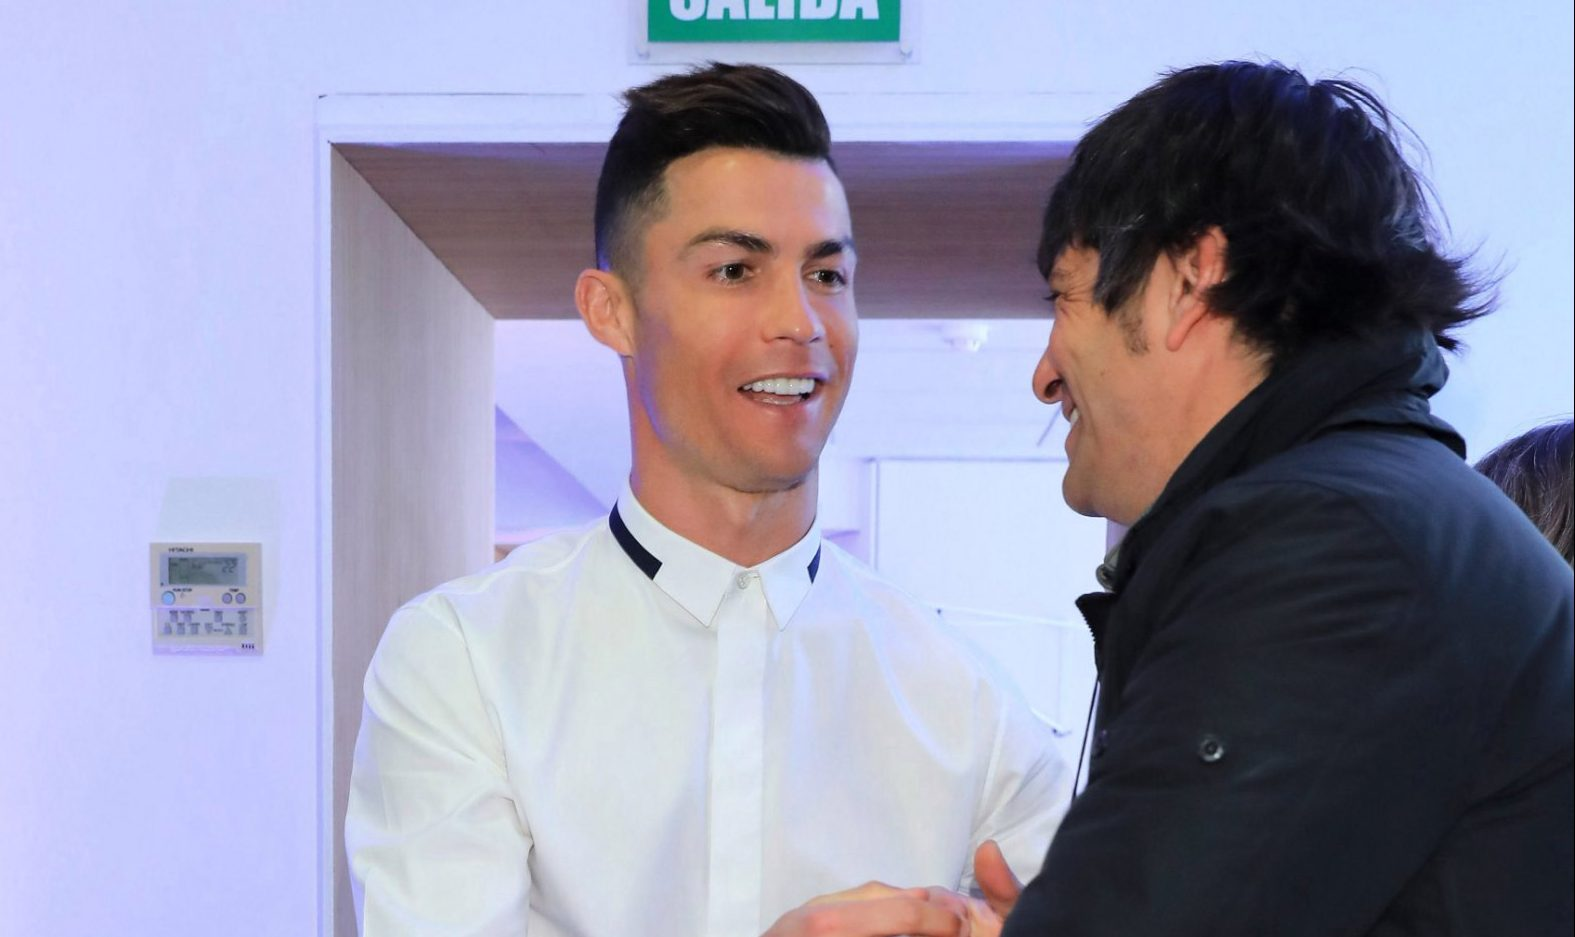 MADRID, SPAIN - MARCH 18: Cristiano Ronaldo presents his new business 'Isparya' on March 18, 2019 in Madrid, Spain. (Photo by Europa Press Entertainment/Europa Press via Getty Images)